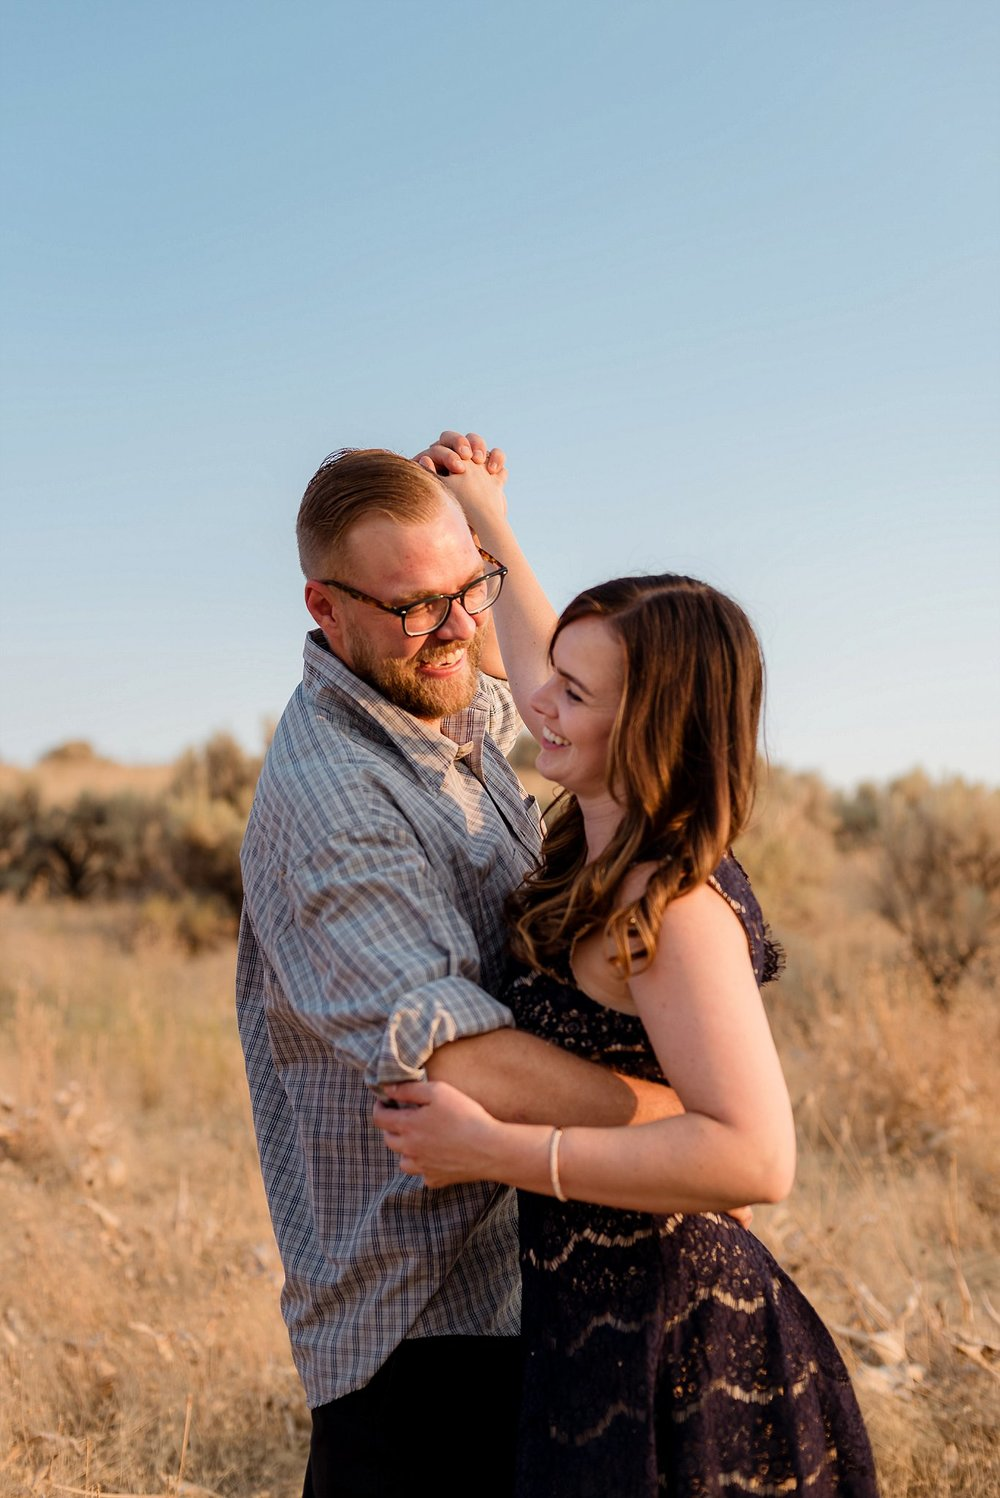 Zilla Photography - Boise Foothills Date Night Couple Session-11_SM.jpg